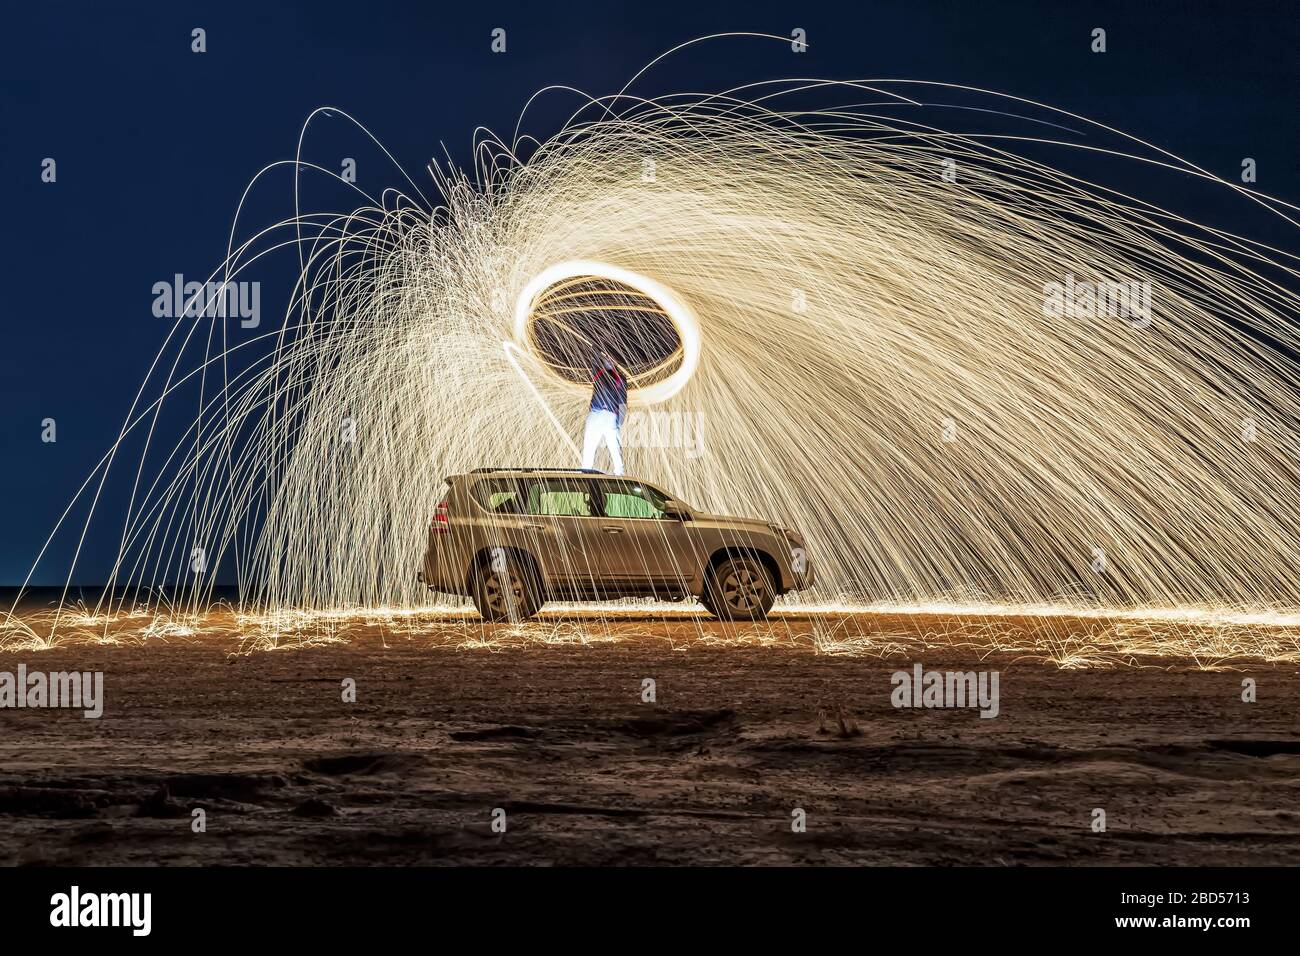 A steel wool on fire at night (night photography using a slow shutter speed) - selective focused. Stock Photo